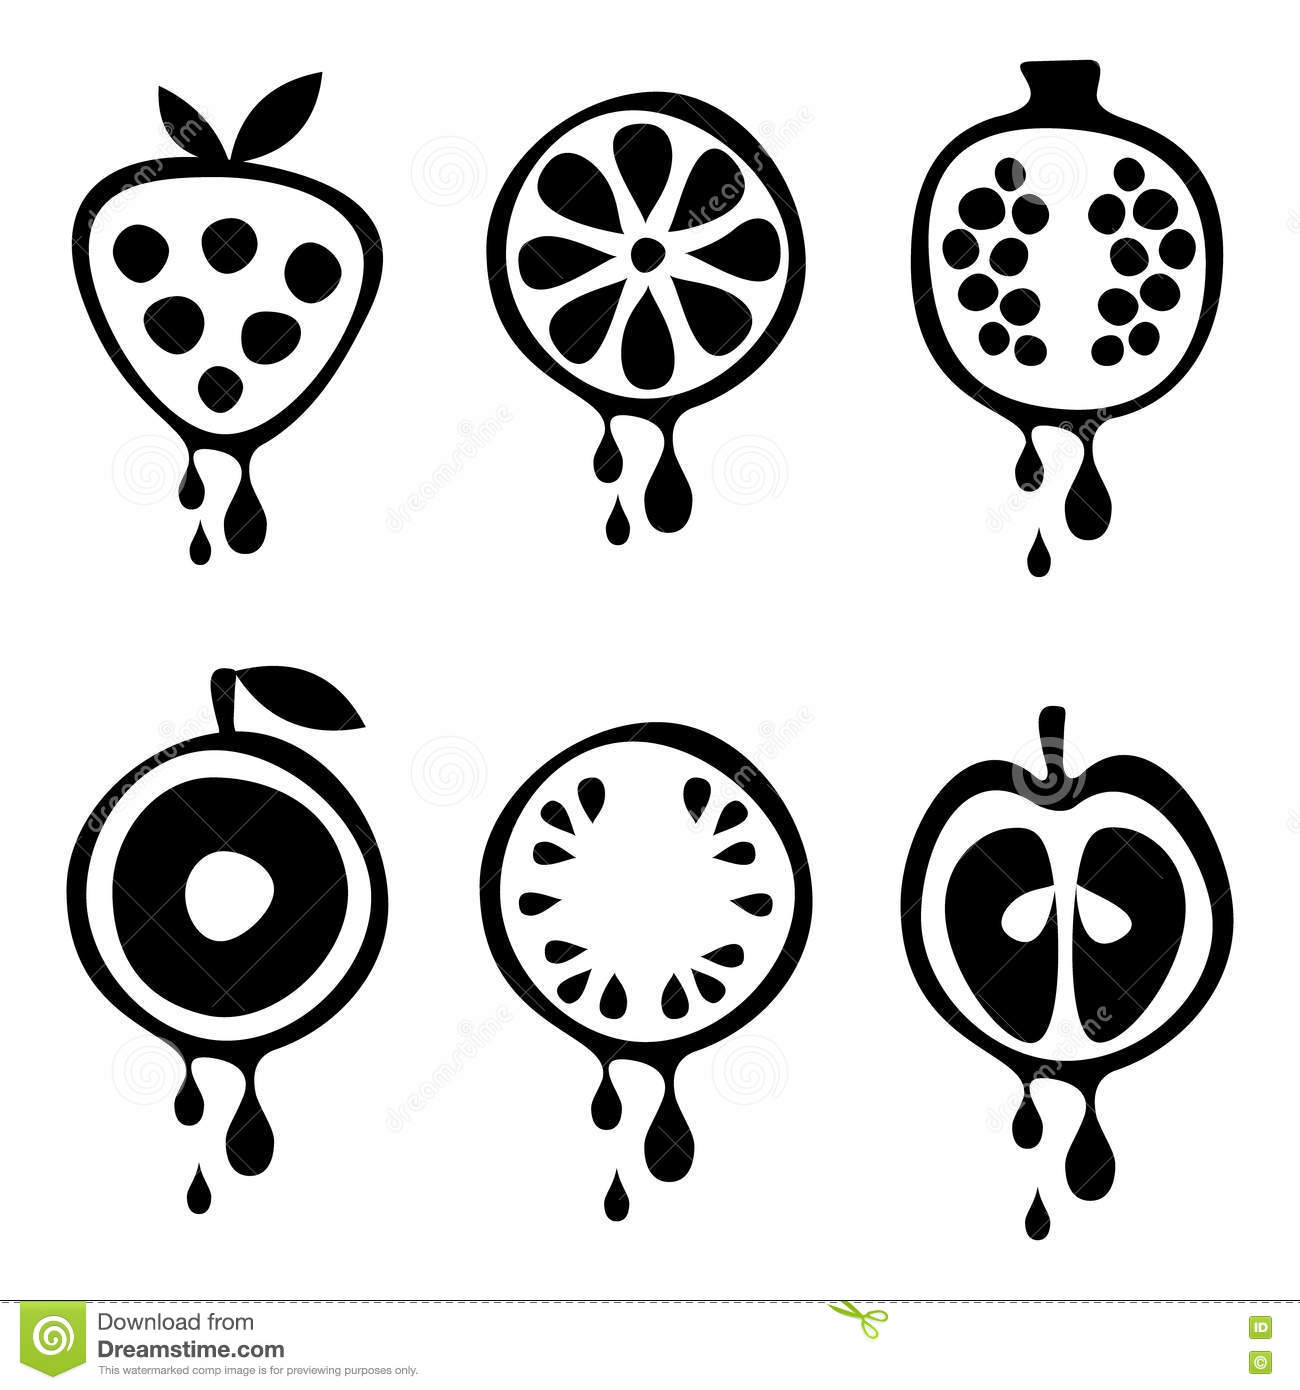 Set Of Vector Black And White Illustrations Of Fruits